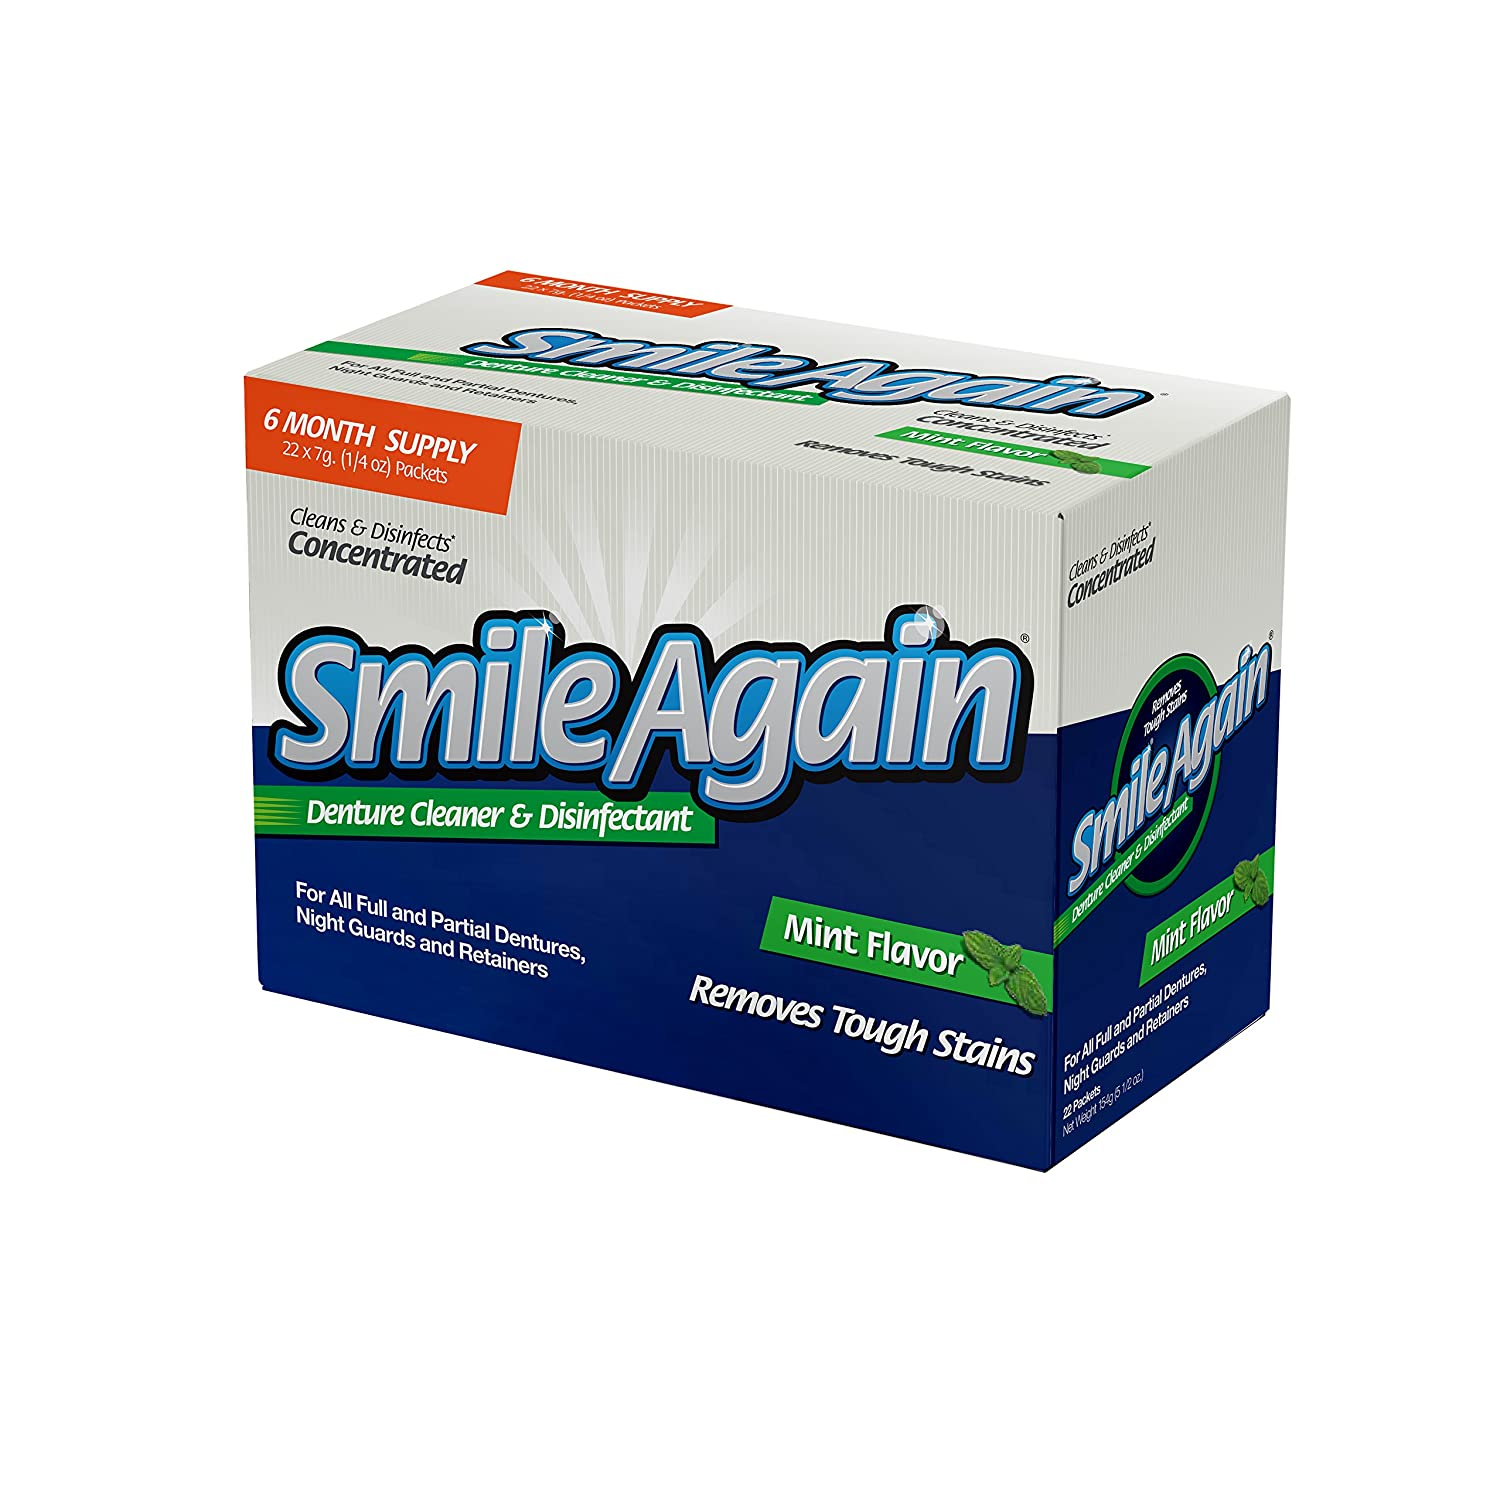 Smile Again Denture Cleaner, Mint Flavor, 7g (22 Pack) Protech ProTech1